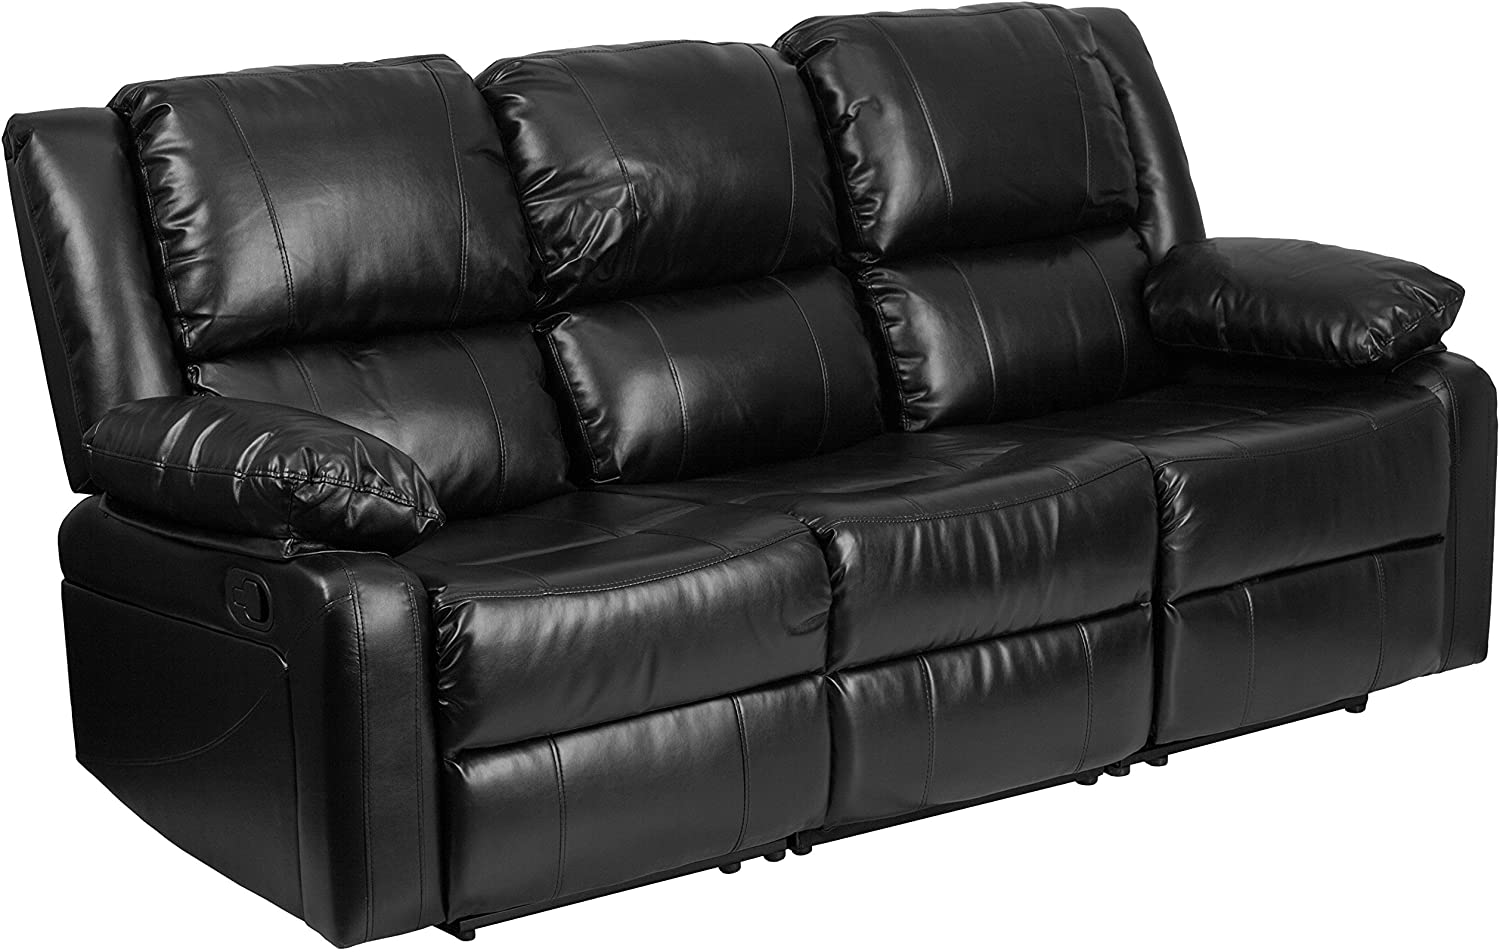 Flash Furniture Harmony Series Black Leather Sofa